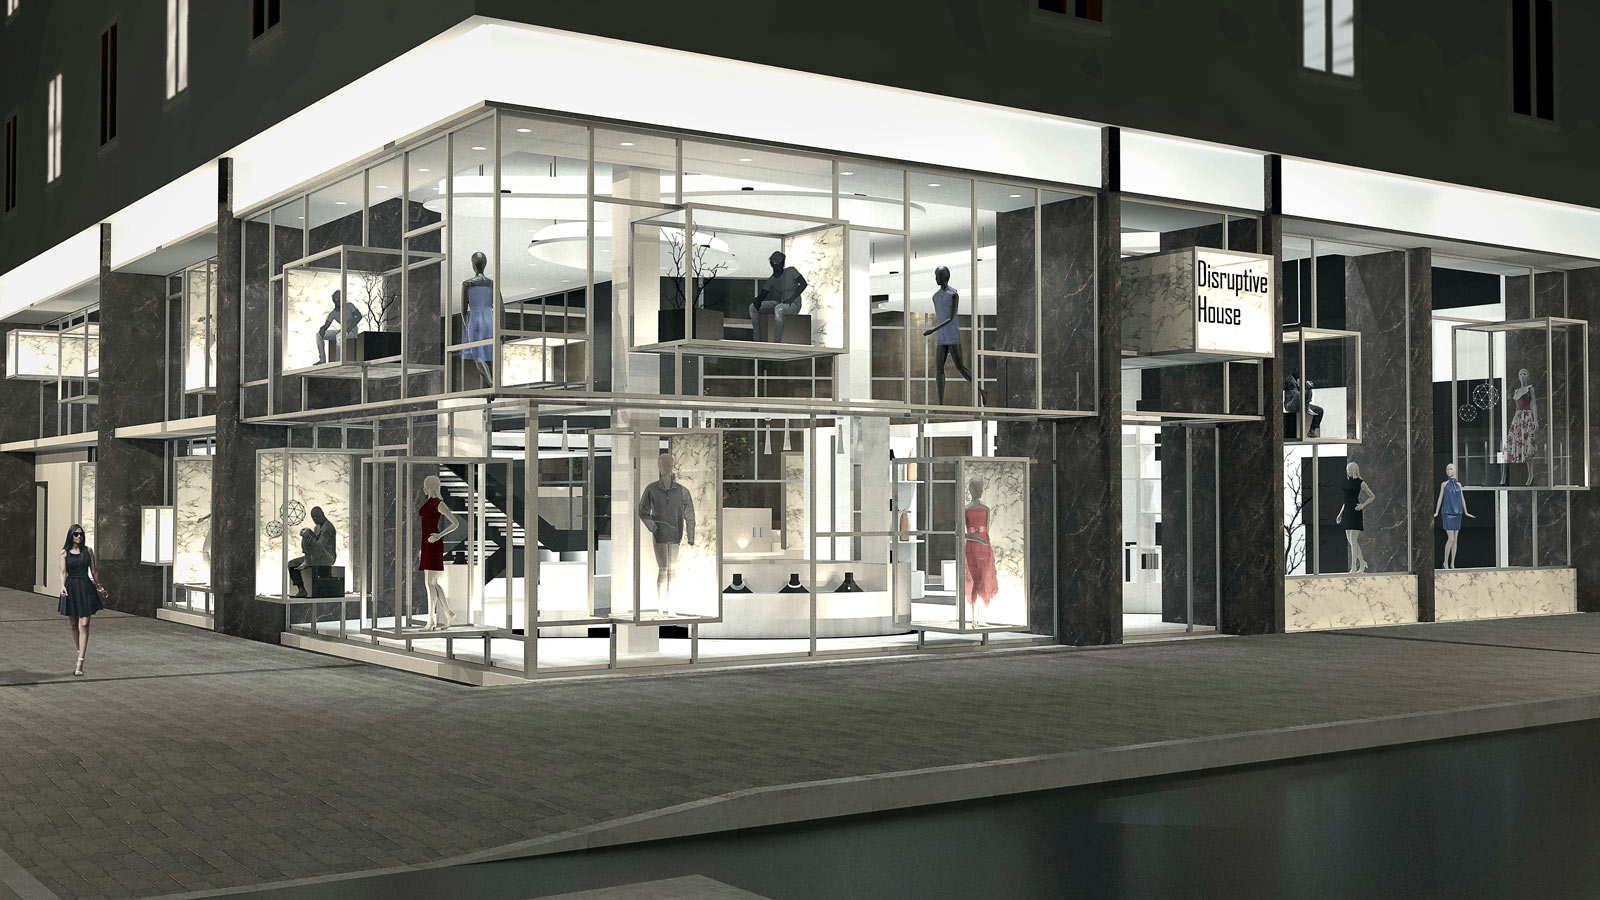 Twelfth Porcelanosa Awards Finalists: Disruptive House redefines the retail concept with experiential interior design